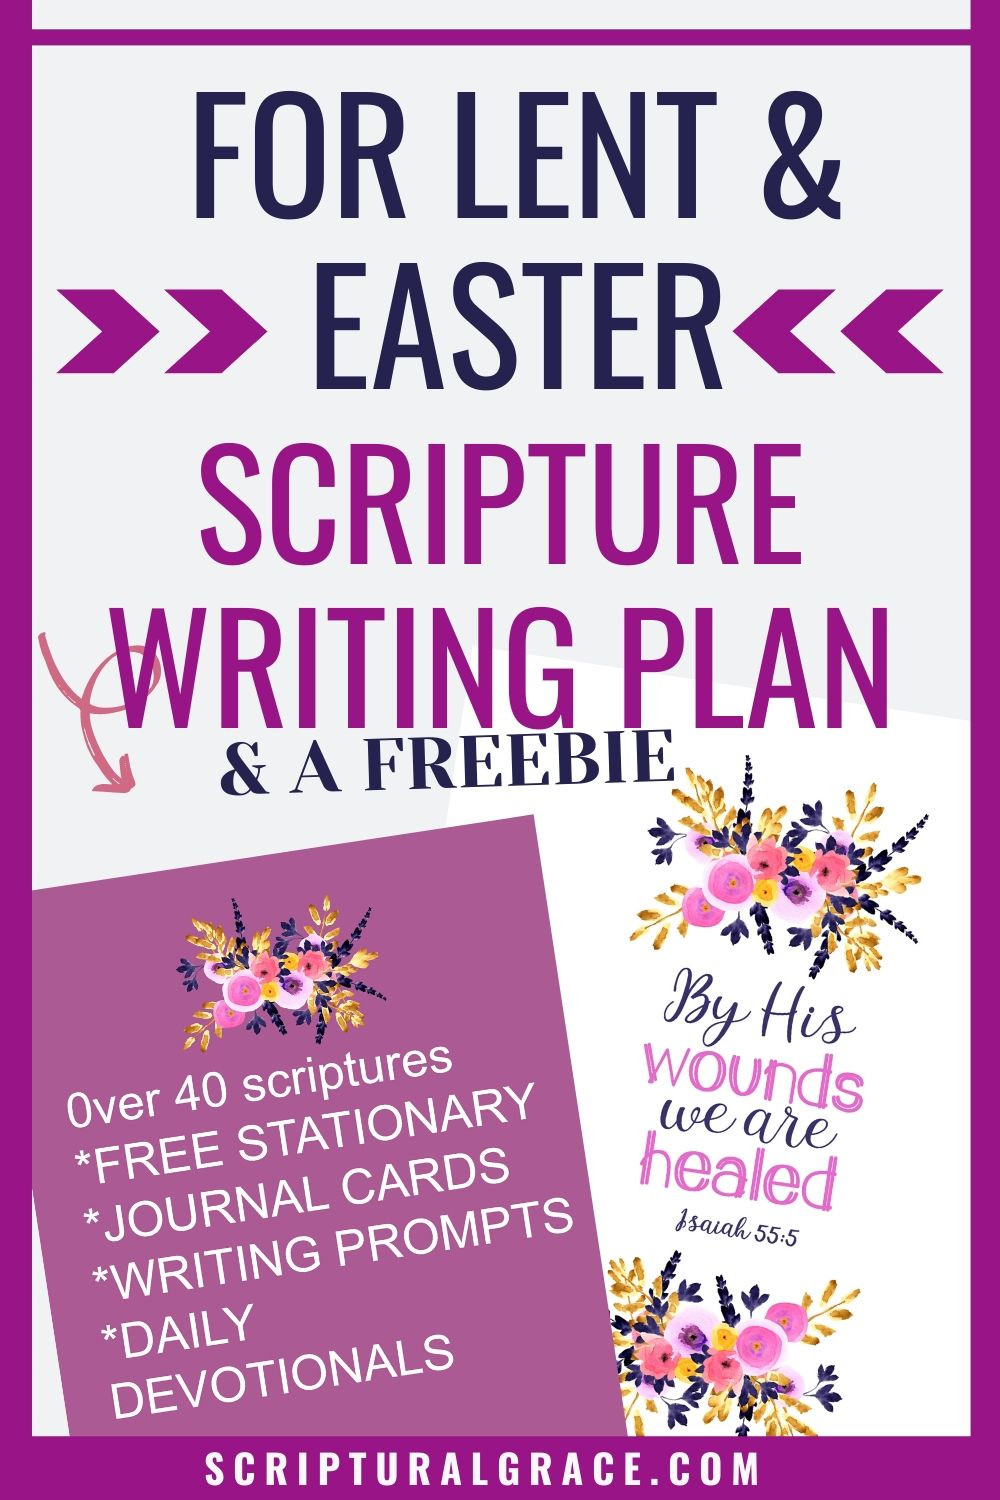 Free scripture writing plan for Lent and Easter with  free printable